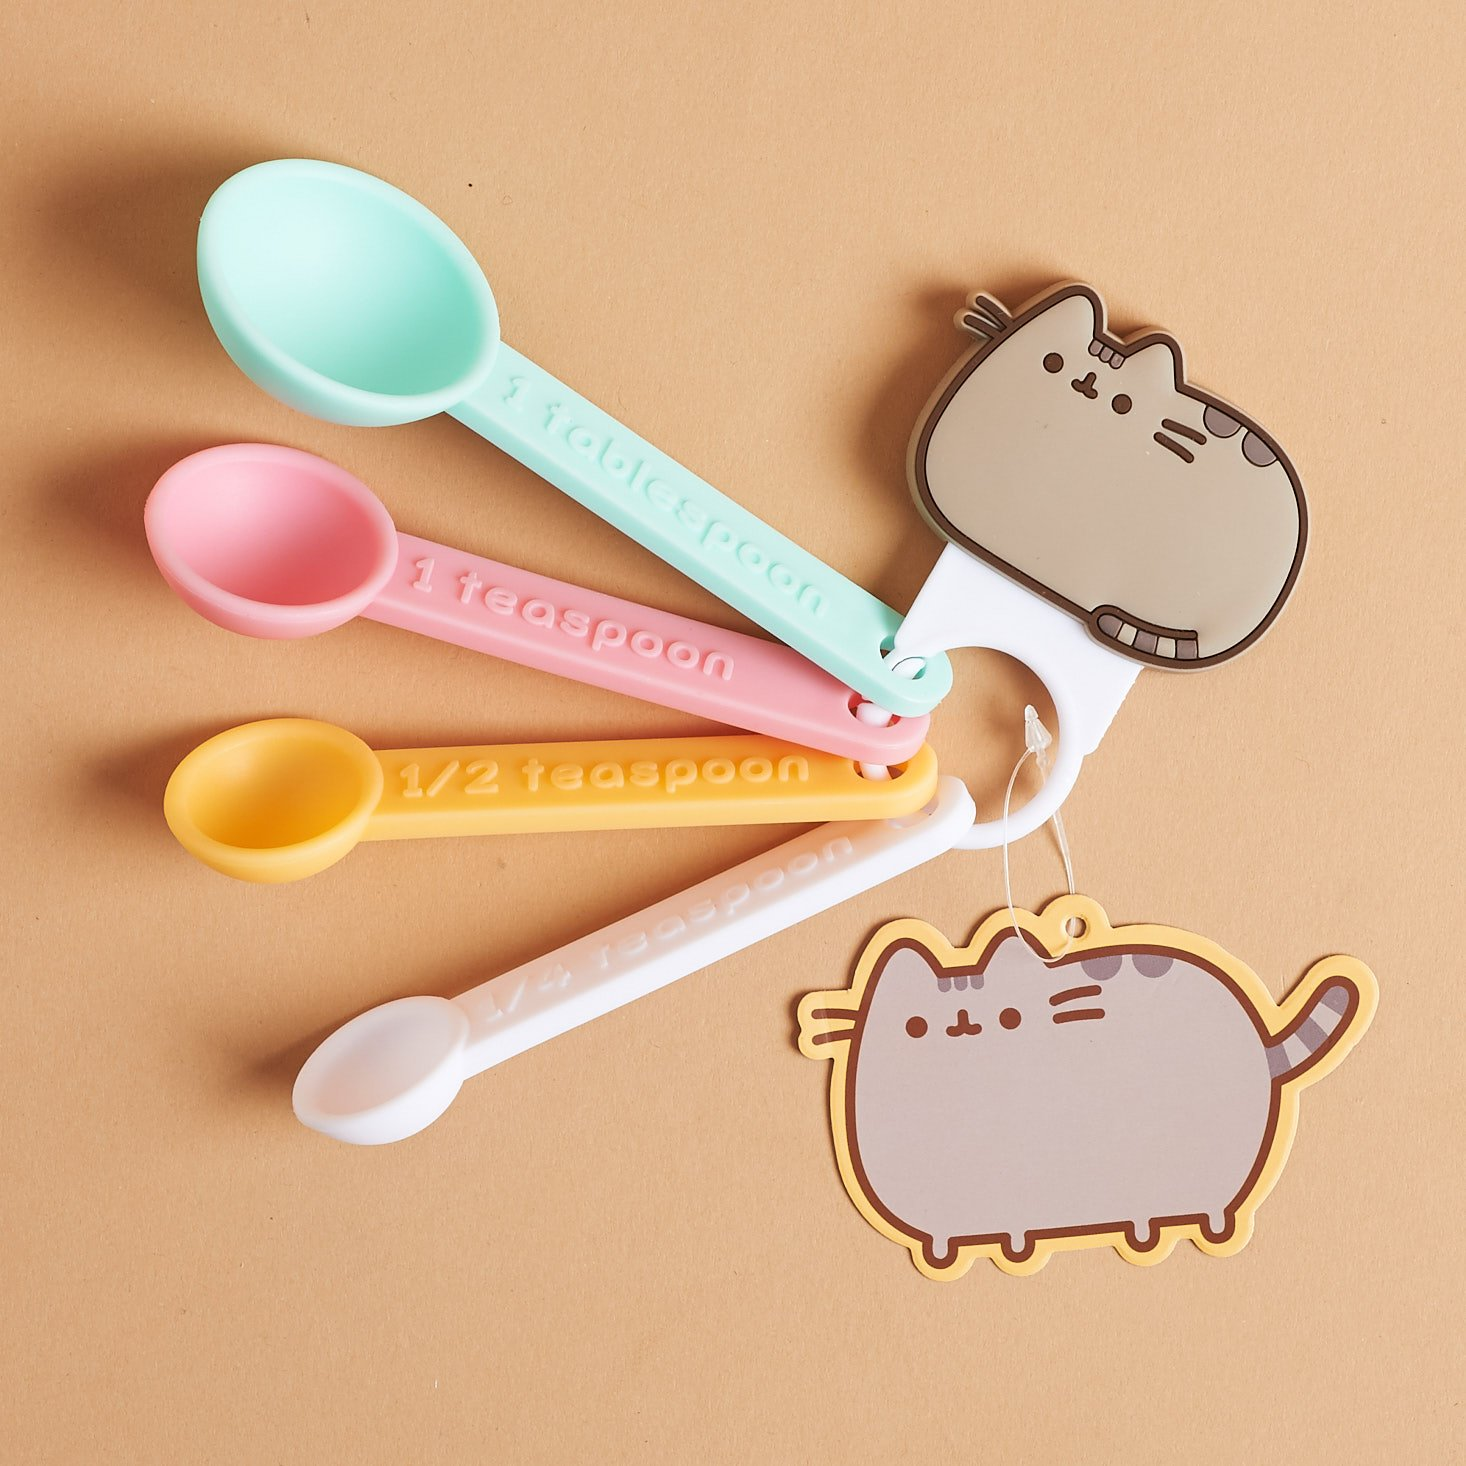 Pusheen Measuring spoon set on ring